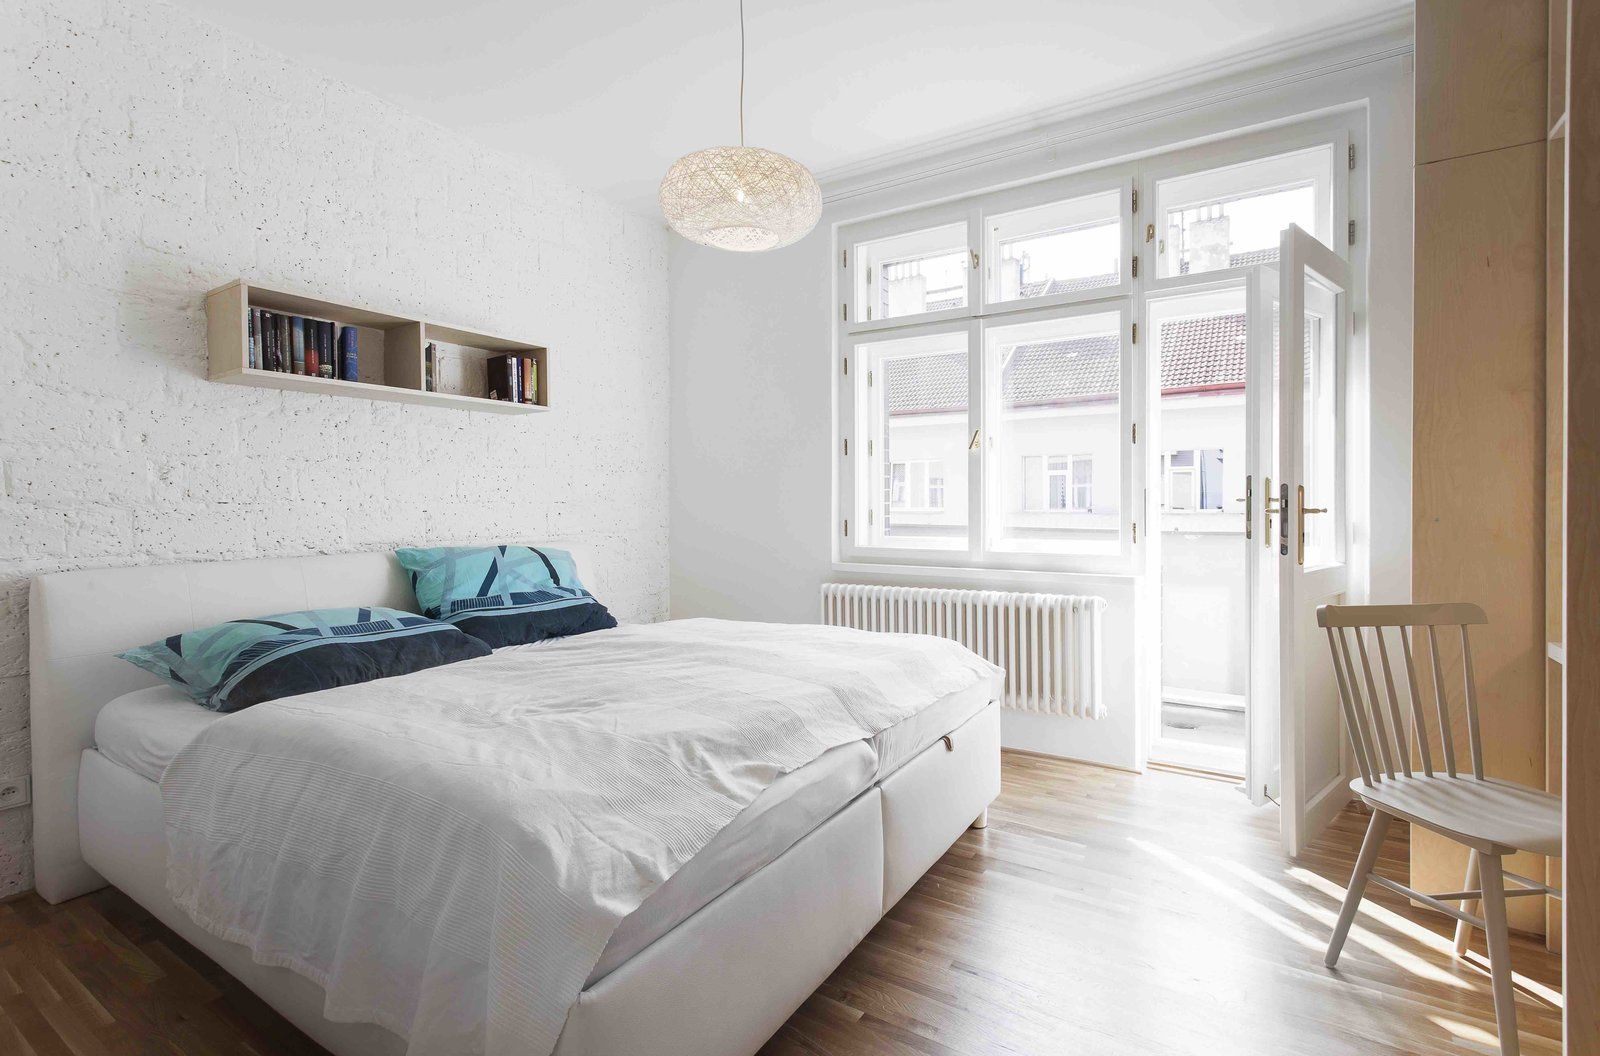 Bedroom, Bookcase, Medium Hardwood Floor, Pendant Lighting, Bed, and Chair  Photo 6 of 13 in A Family Apartment in Prague That's Filled With Clever Storage Solutions and Built-In Nooks